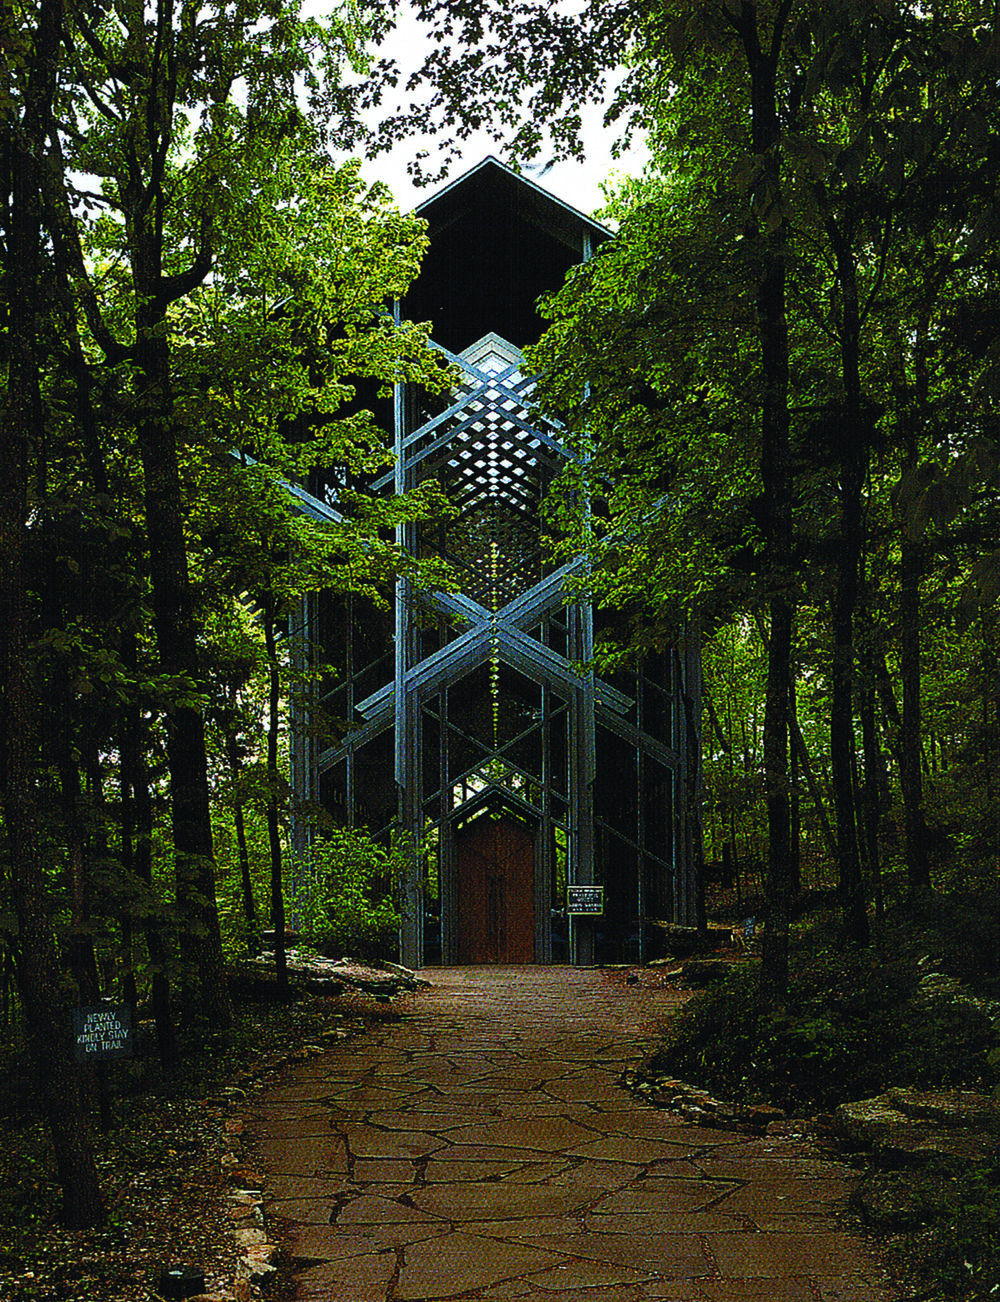 Image 1: Thorncrown Chapel, Fay Jones, 1980, Photograph by Timothy Hursley